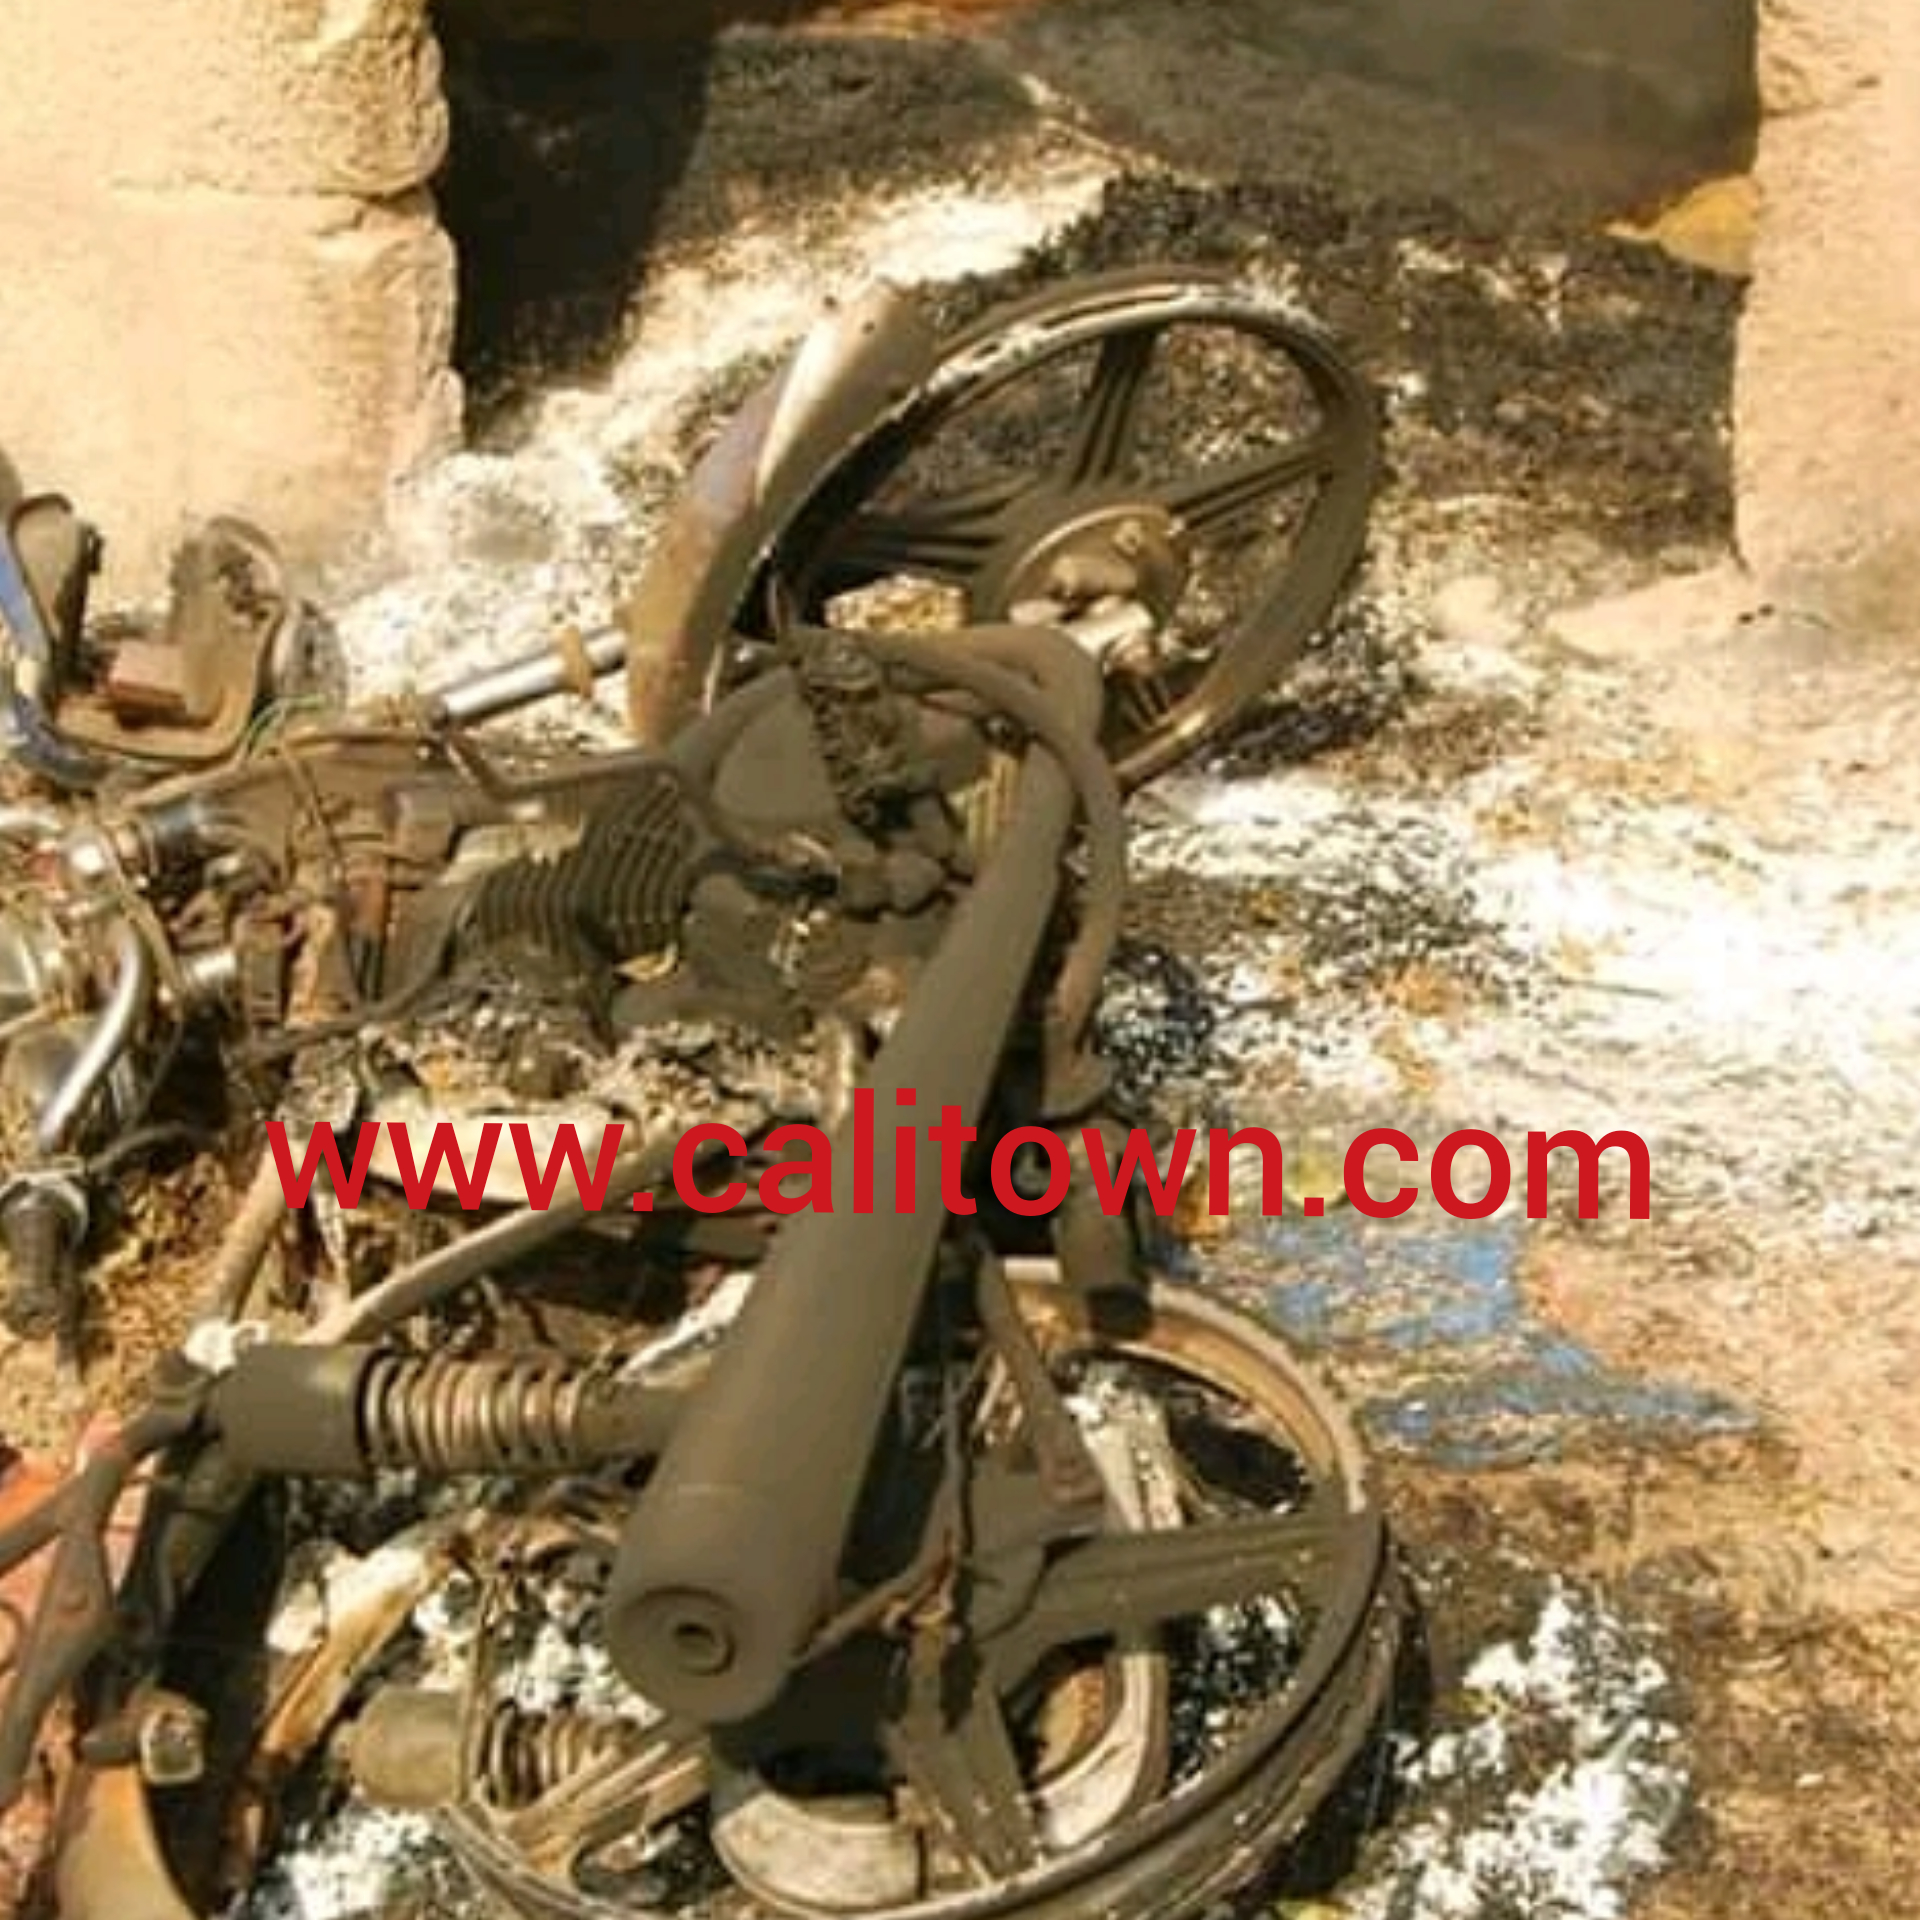 90-Year Old Roasted In CR Communal Clash, Indigene Cries Out